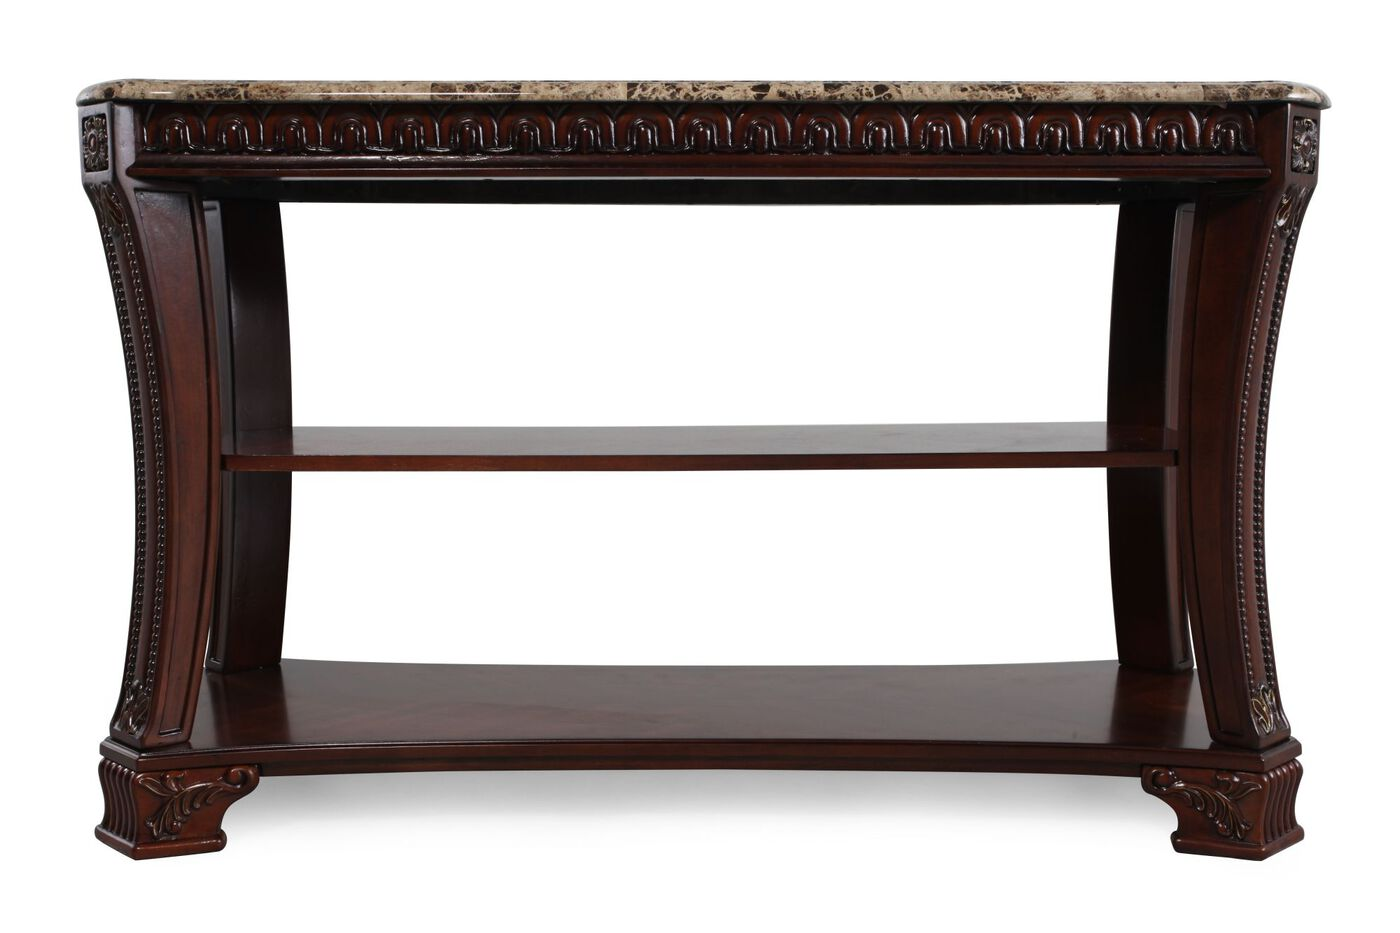 Ashley Ledelle Console Table  Mathis Brothers Furniture. Best Desk Calculator. Desk Com Competitors. Blowjob Under The Desk. 4 Drawer Wicker Storage. Storage Cart Drawers. Sur La Table Flatware. Glass Drawer Fronts. Red And Black Table